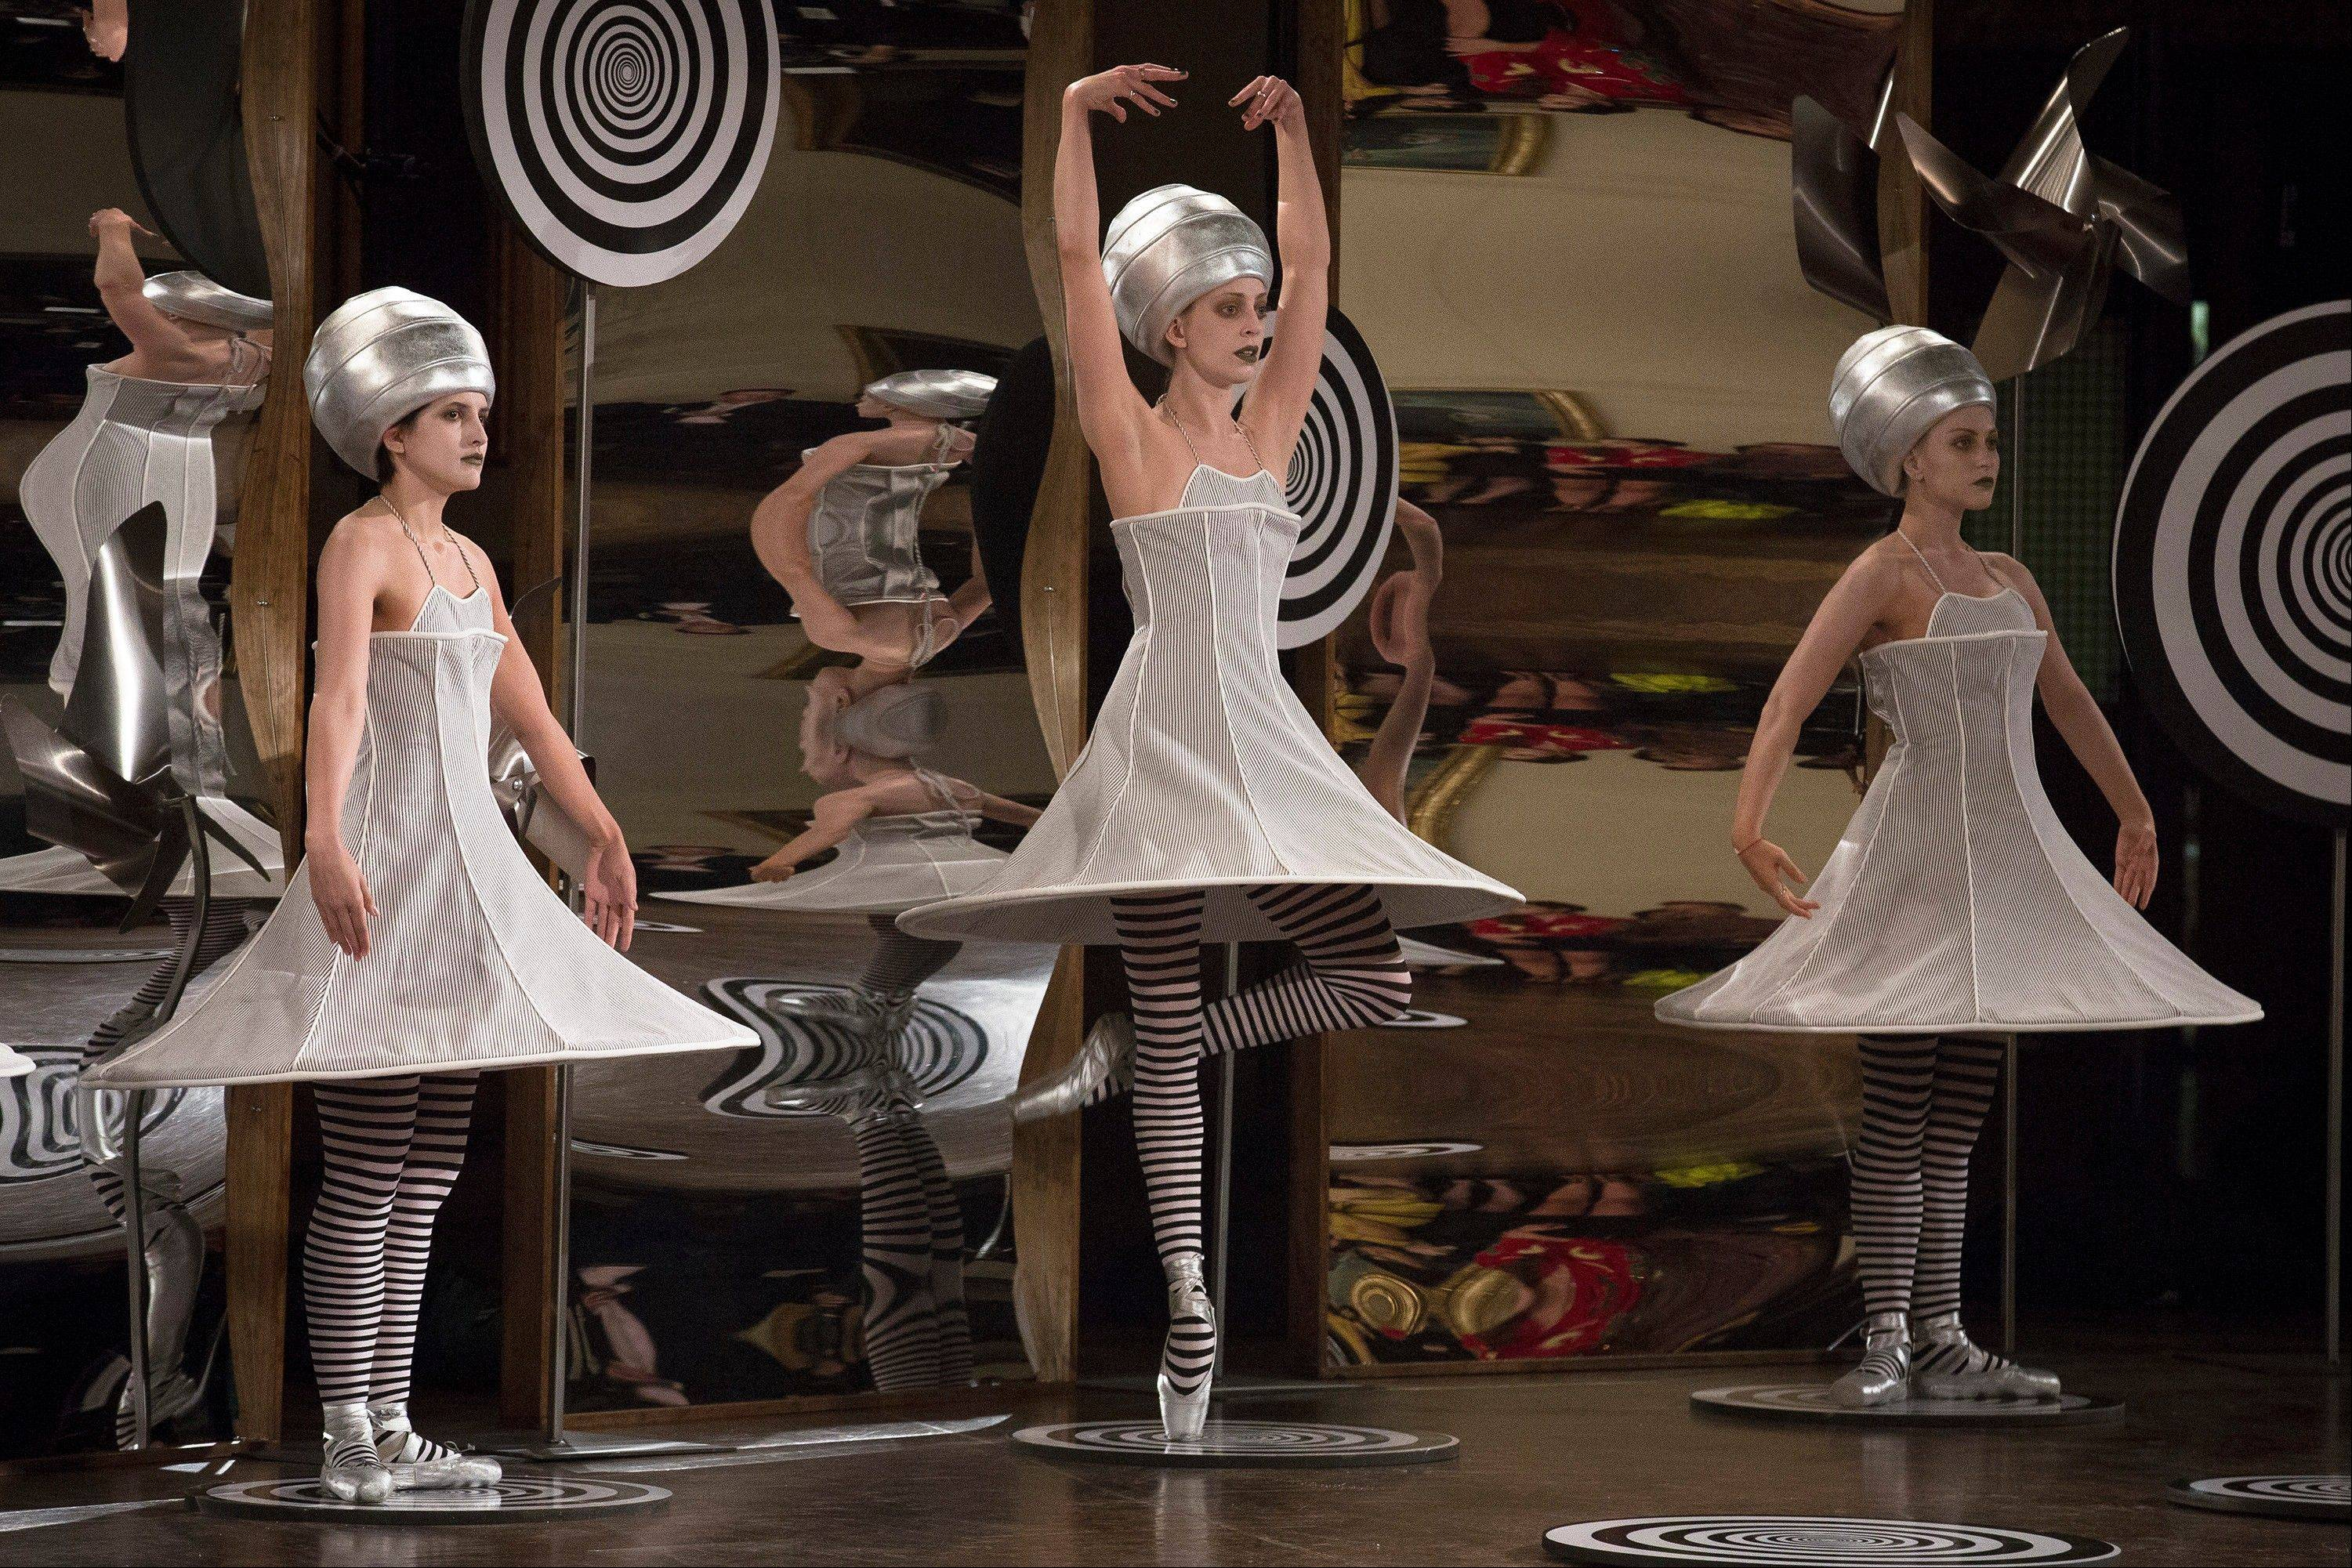 Dancers perform in the background of the presentation space moments before the Thom Browne Spring 2013 collection is modeled during Fashion Week in New York, Monday, Sept. 10, 2012.